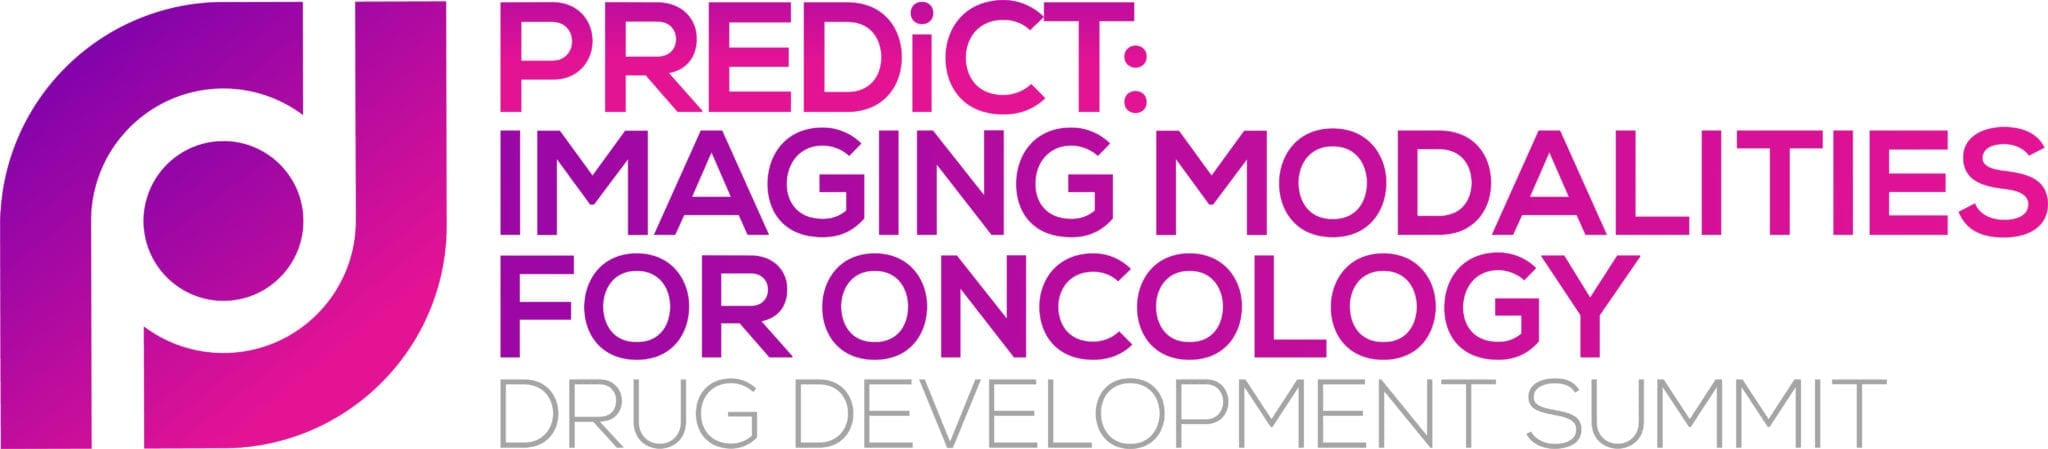 HW191203-PREDiCT-Imaging-Modalities-for-Oncology-Drug-Development-Summit-logo-FINAL-003-scaled